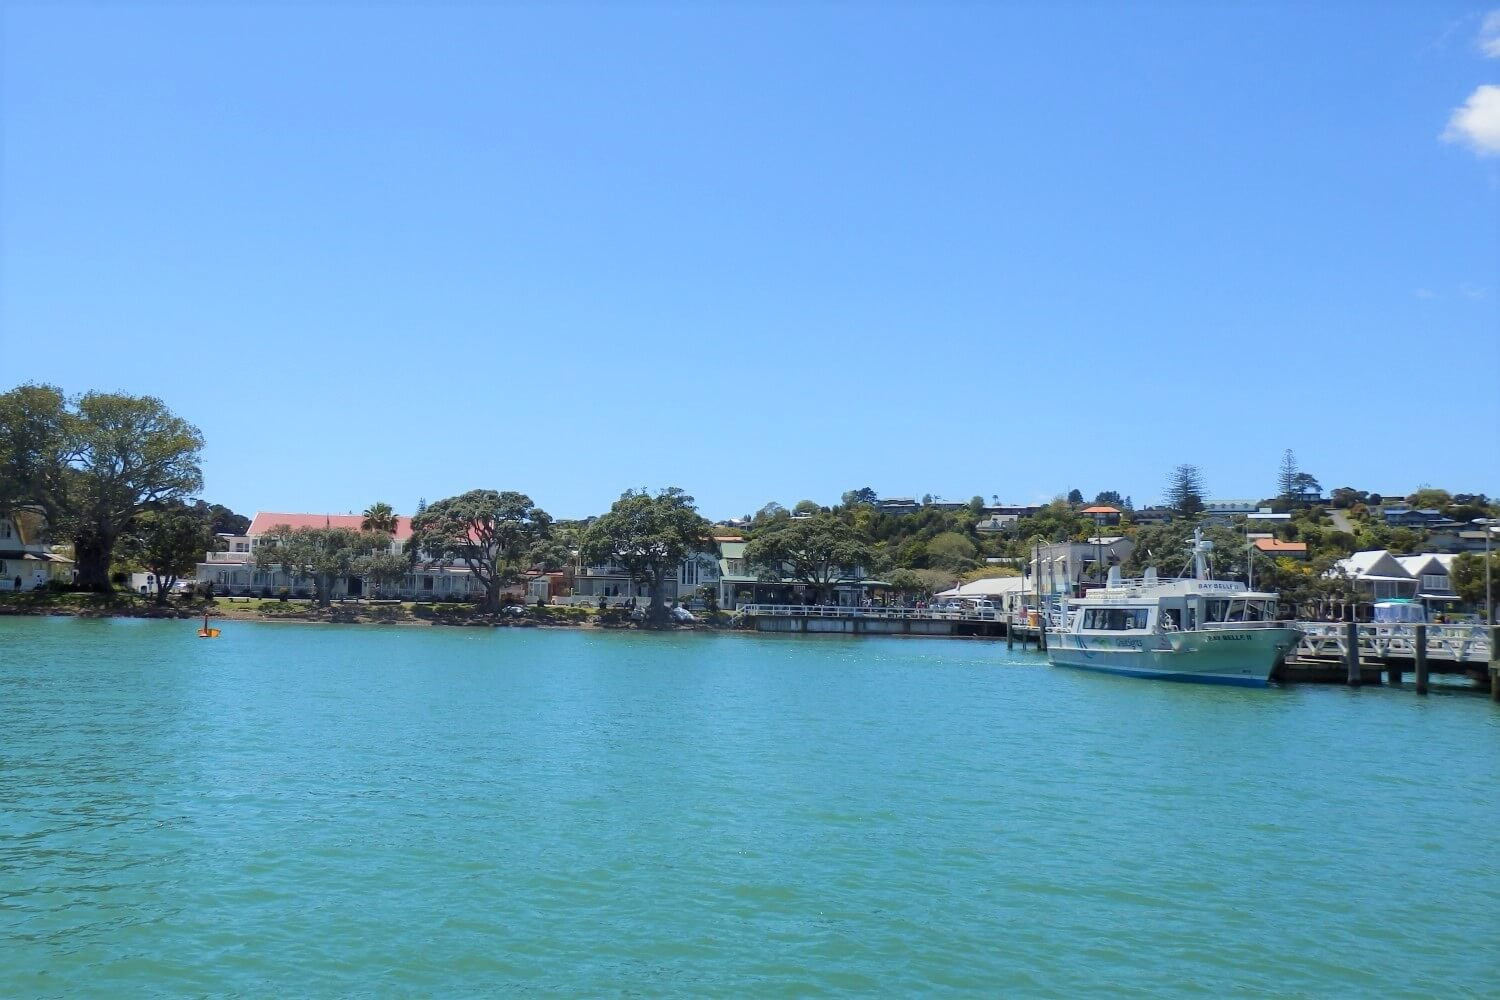 The port of Paihia in the Bay of Islands